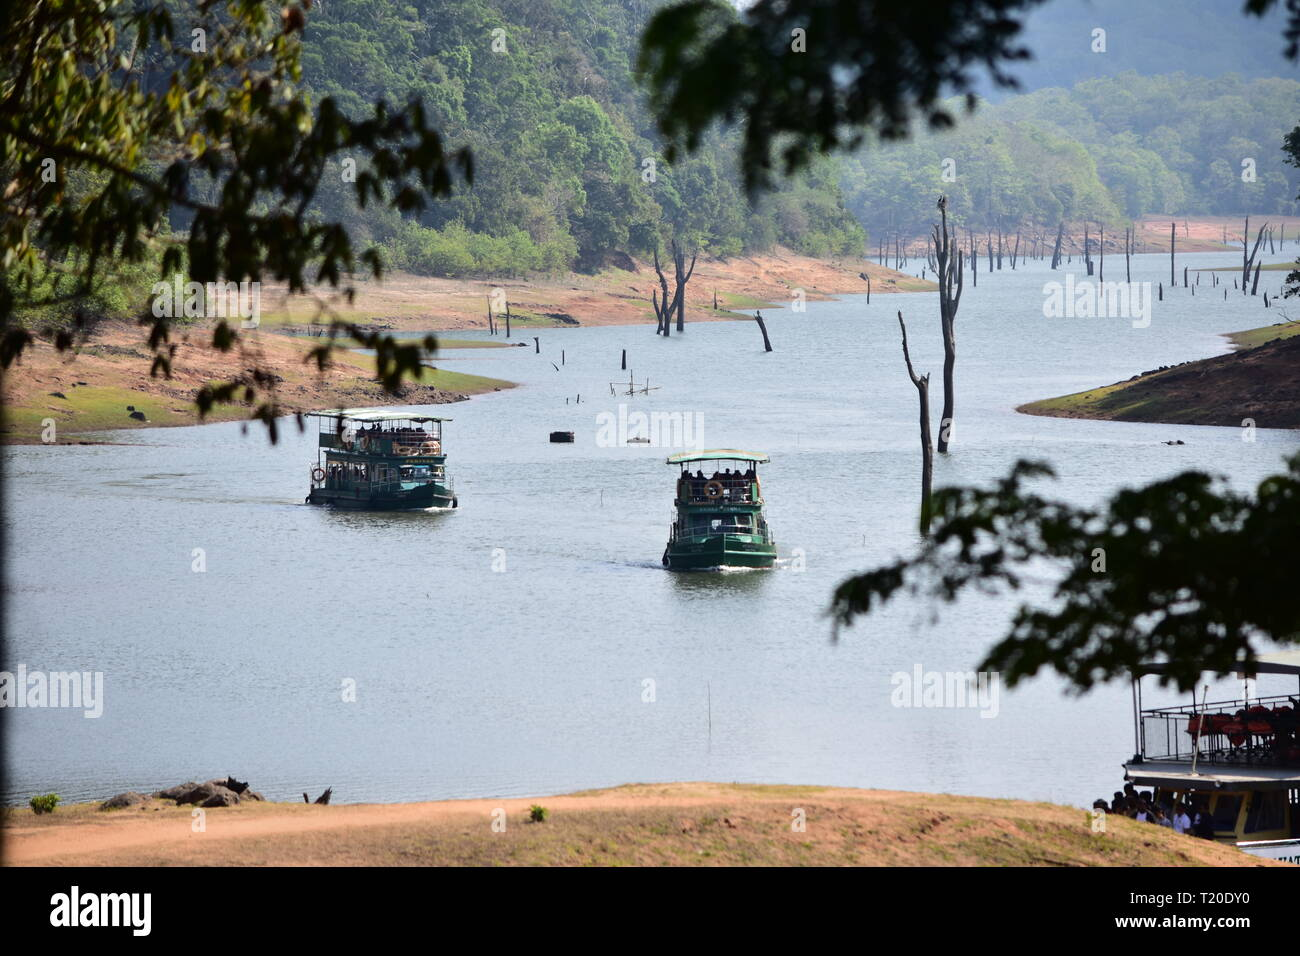 Periyar wildlife sanctuary thekkady - Stock Image